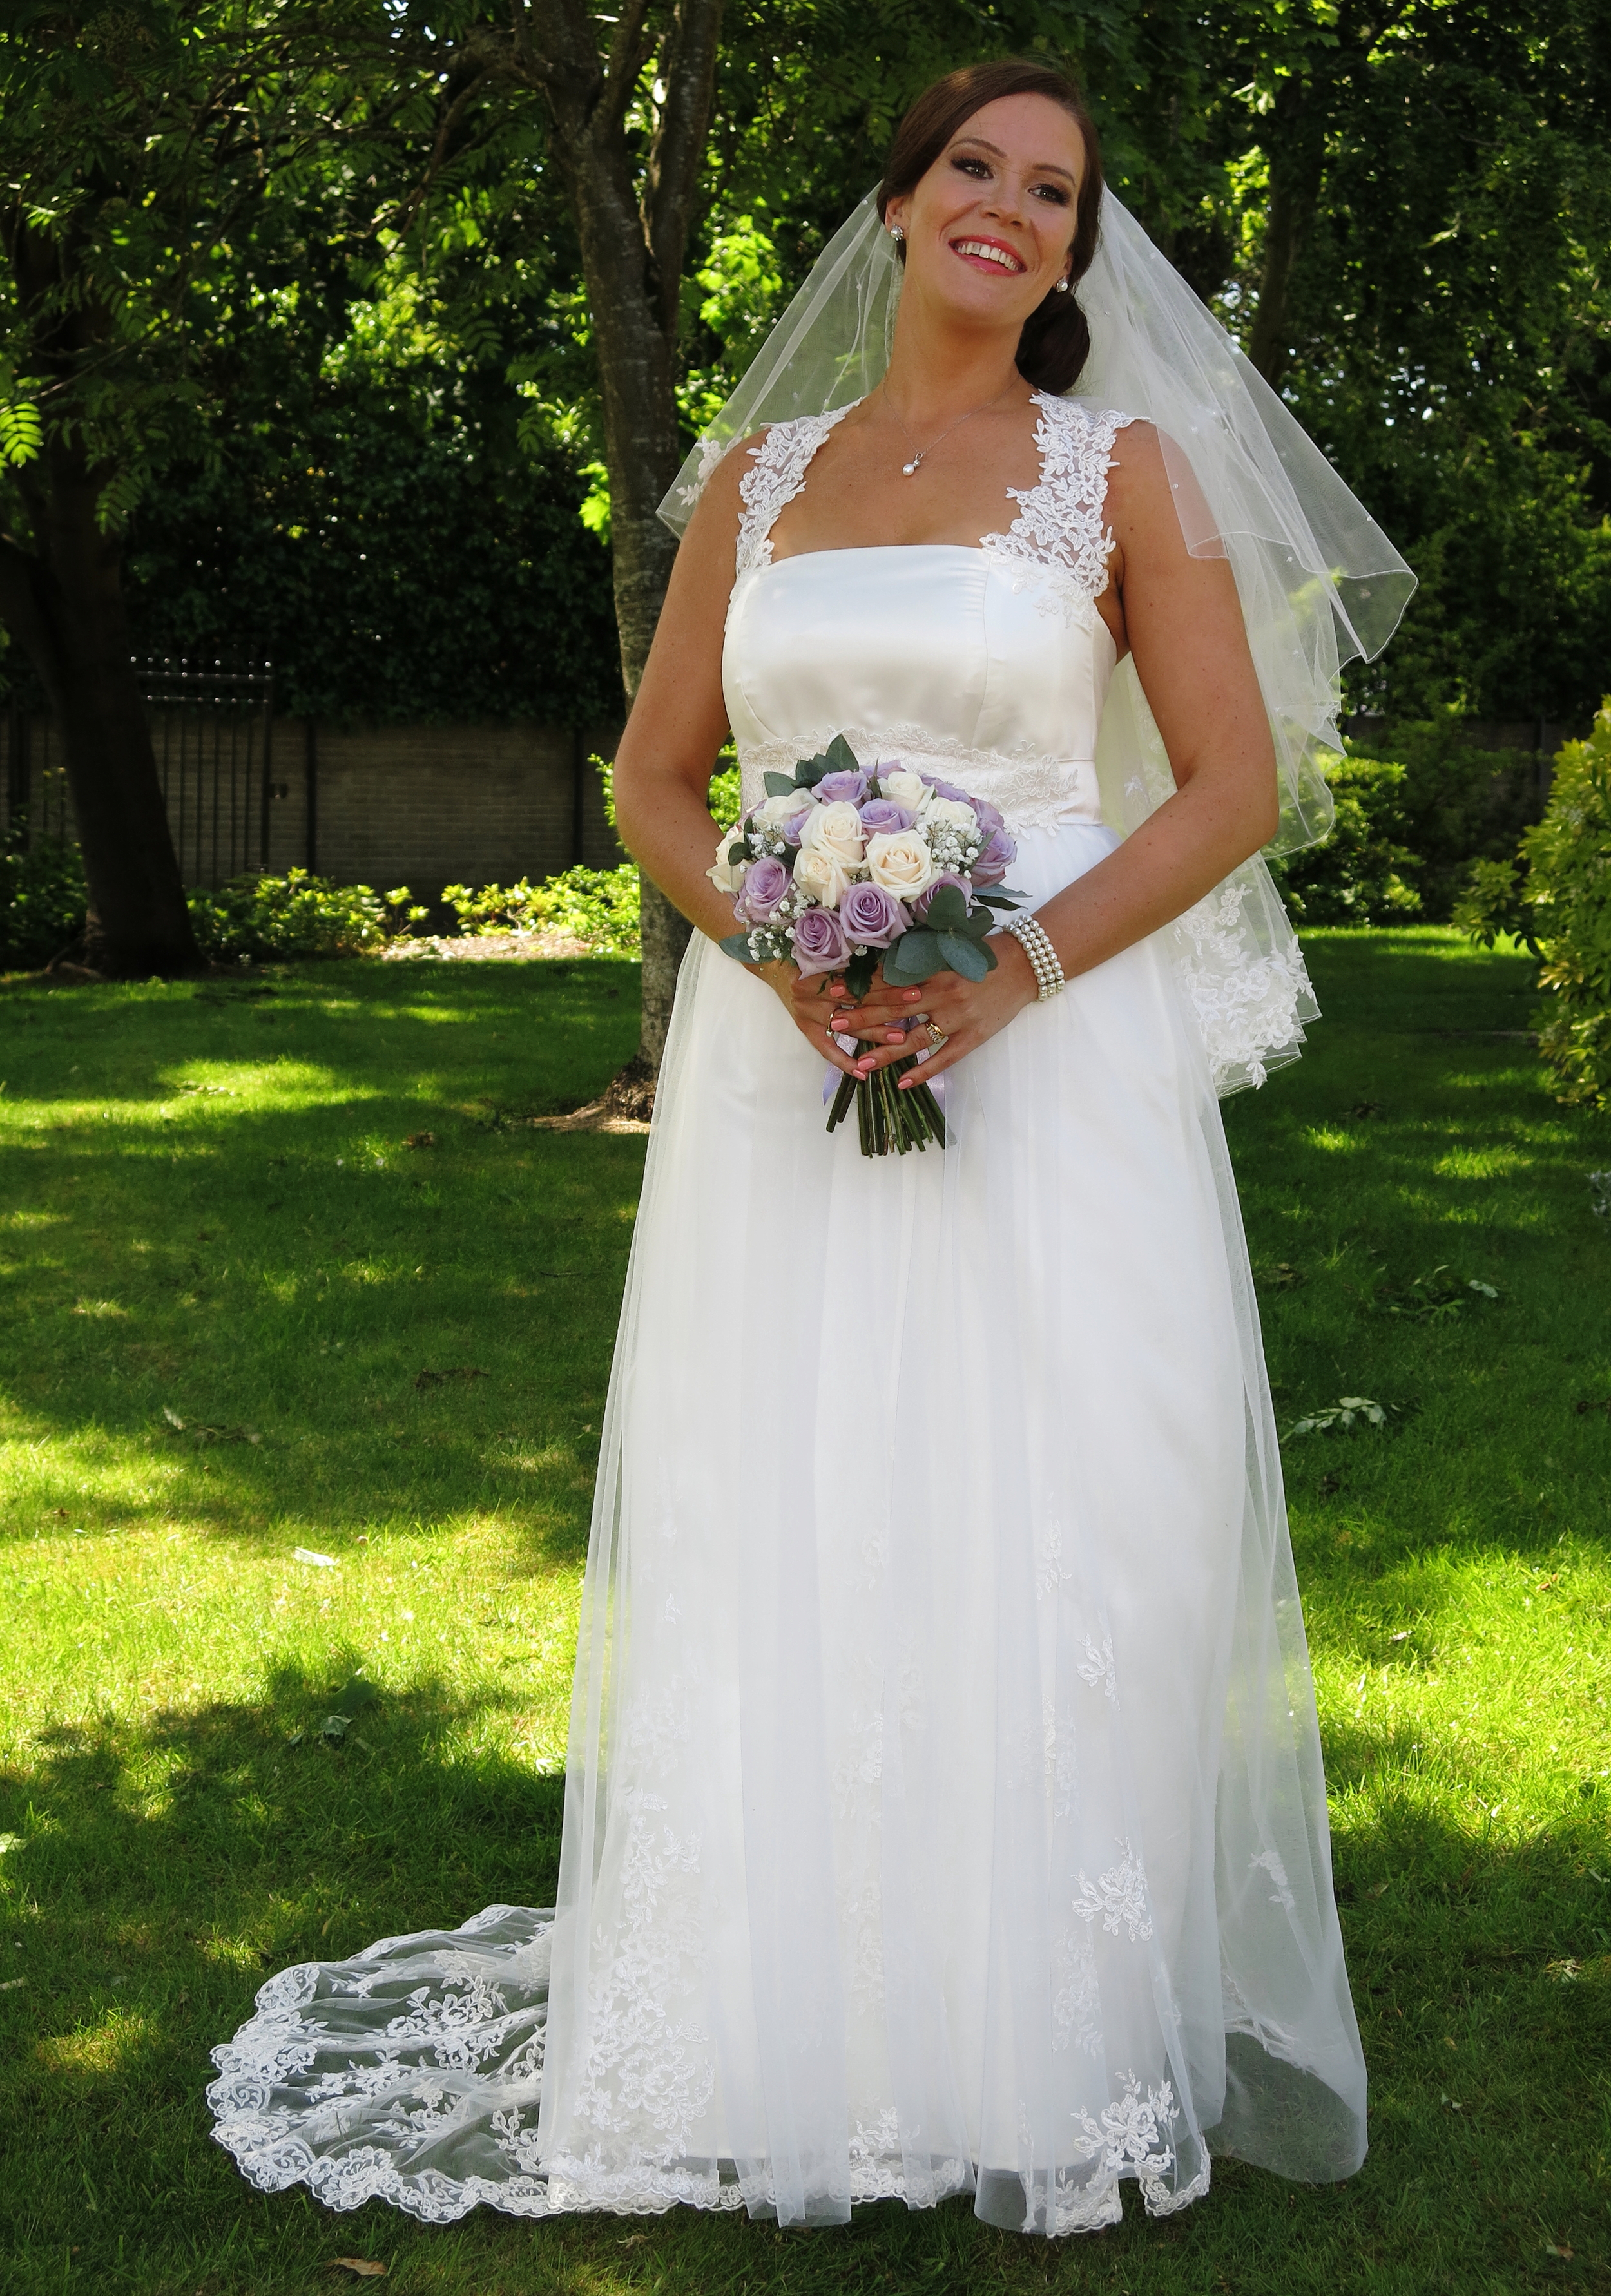 Charlotte :  Duchess satin overlaid with silk tulle, corded lace straps, godets and train.